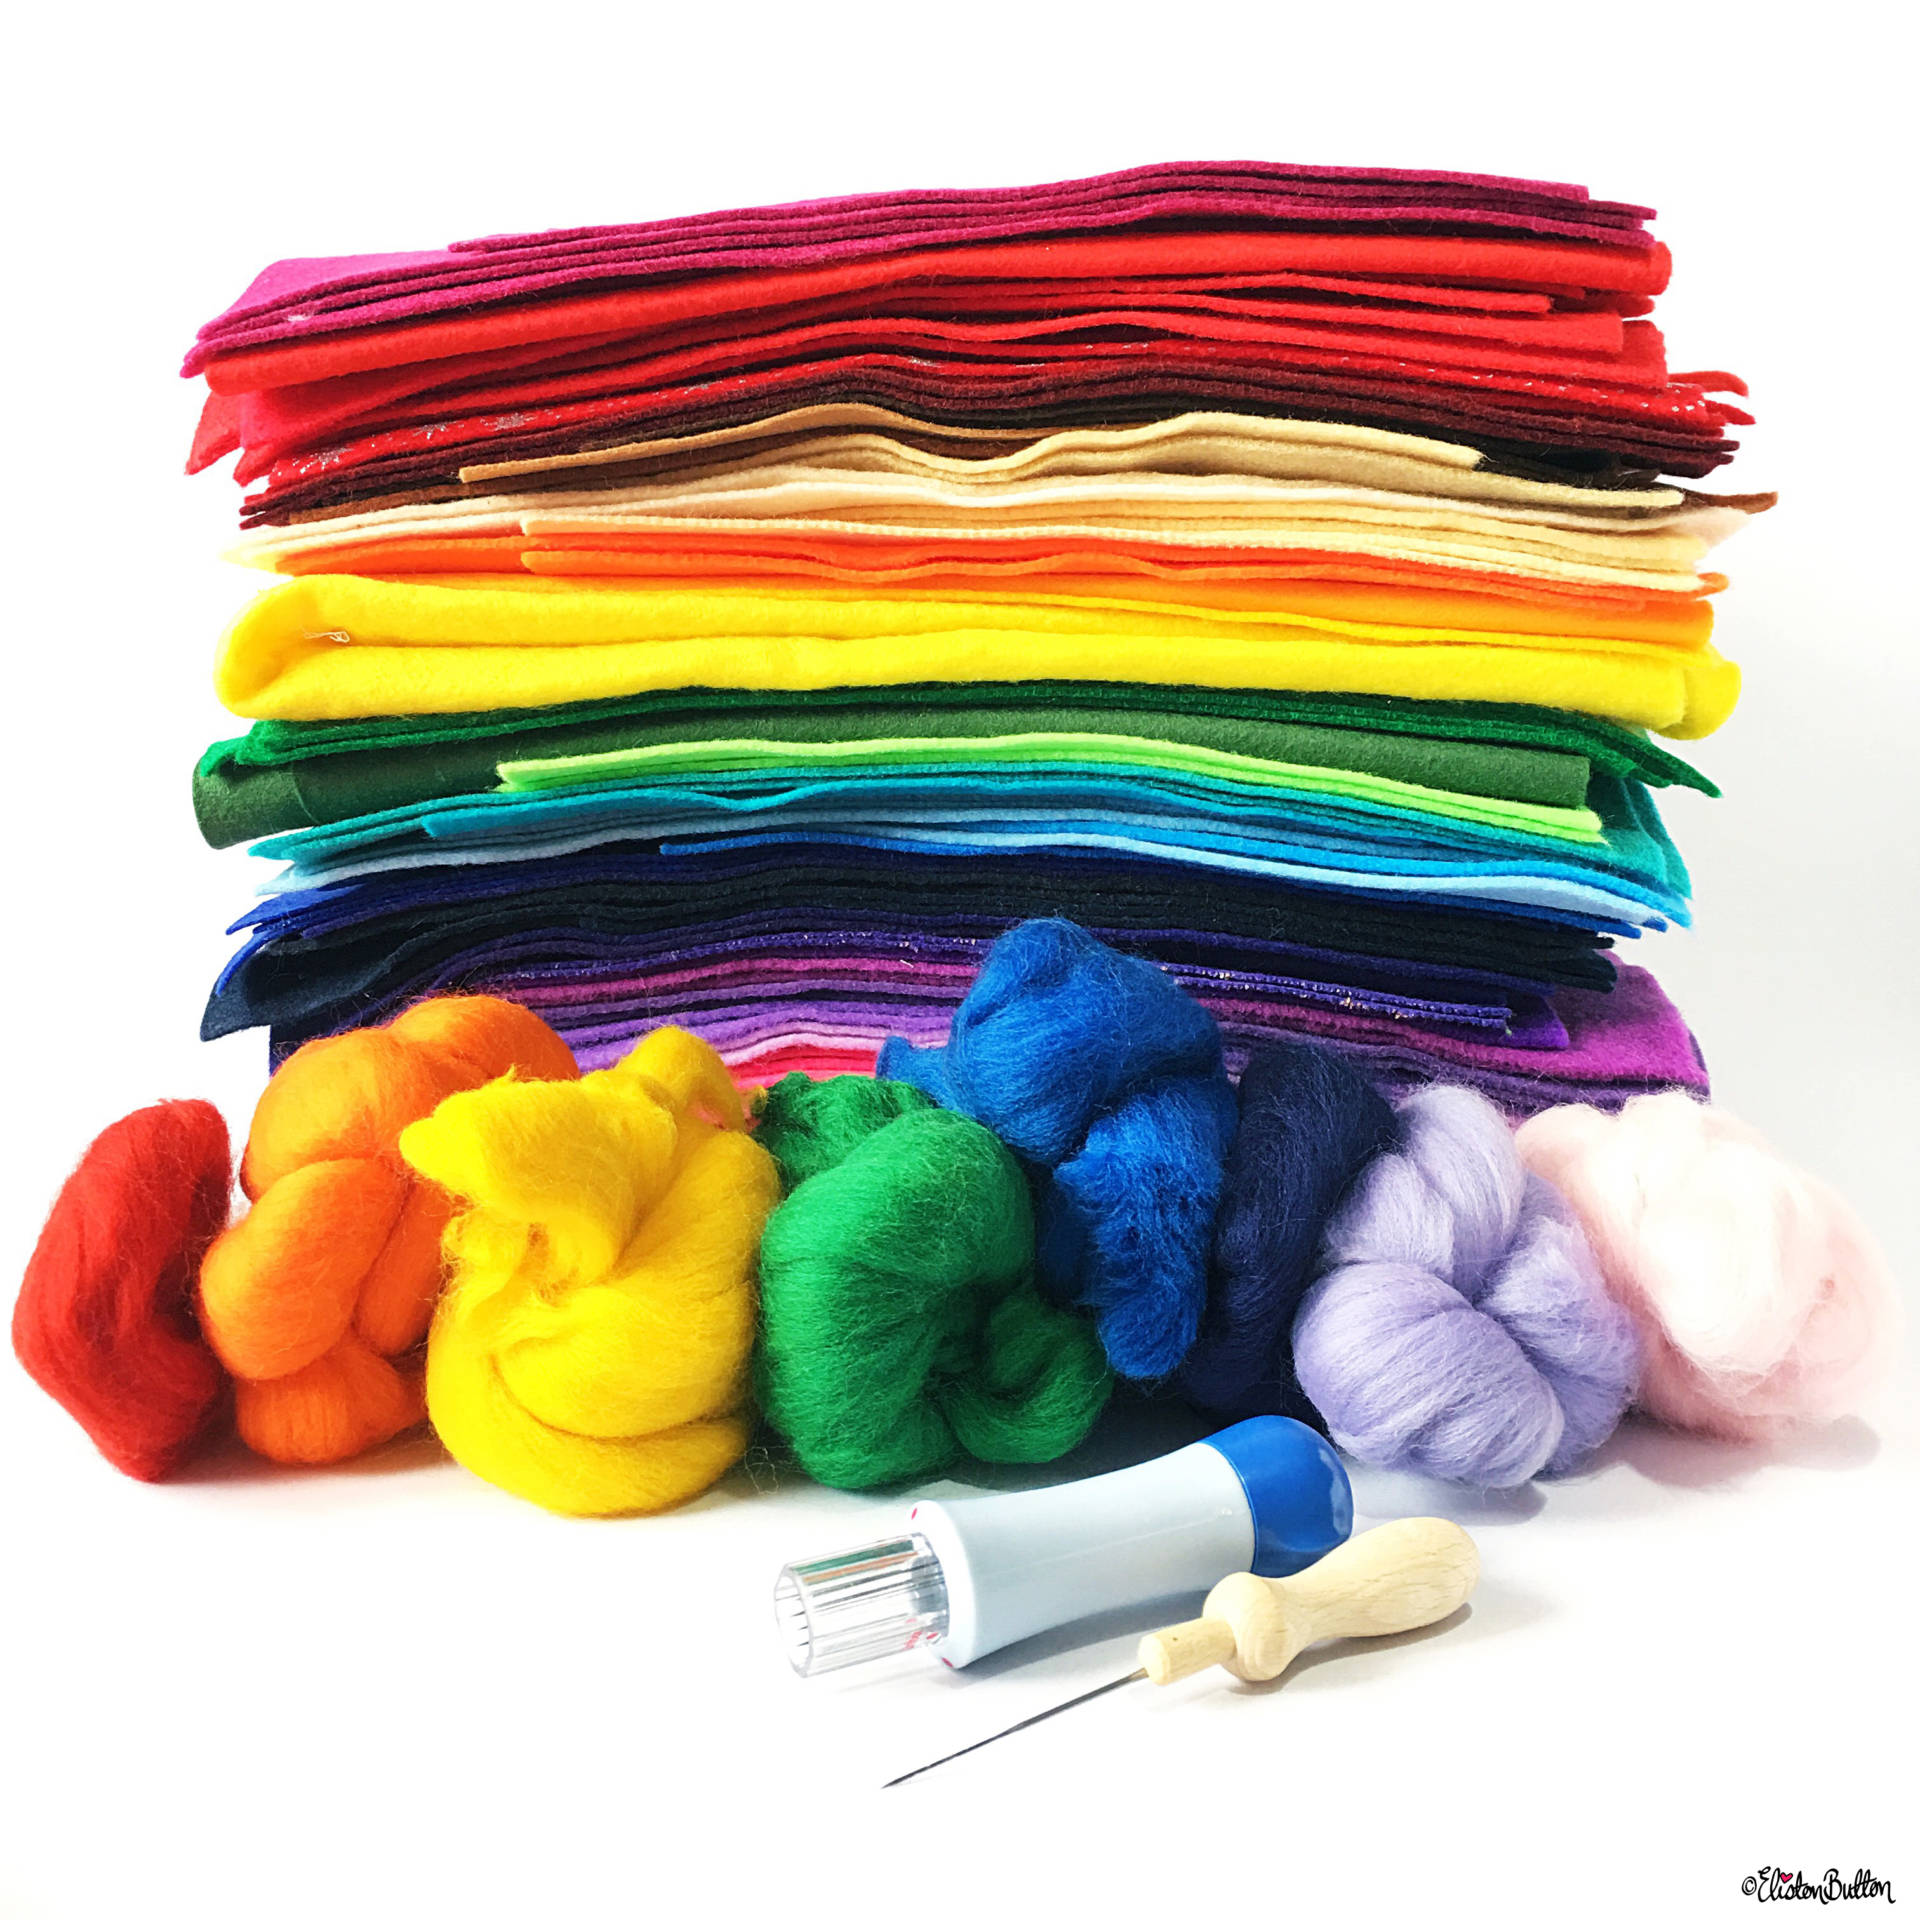 Day 06...F is For...Felt - A Rainbow of Felt and Felting Merino Wool Tops - Photo-a-Day - July 2016 - Eliston Button A-Z of Craft at www.elistonbutton.com - Eliston Button - That Crafty Kid – Art, Design, Craft & Adventure.